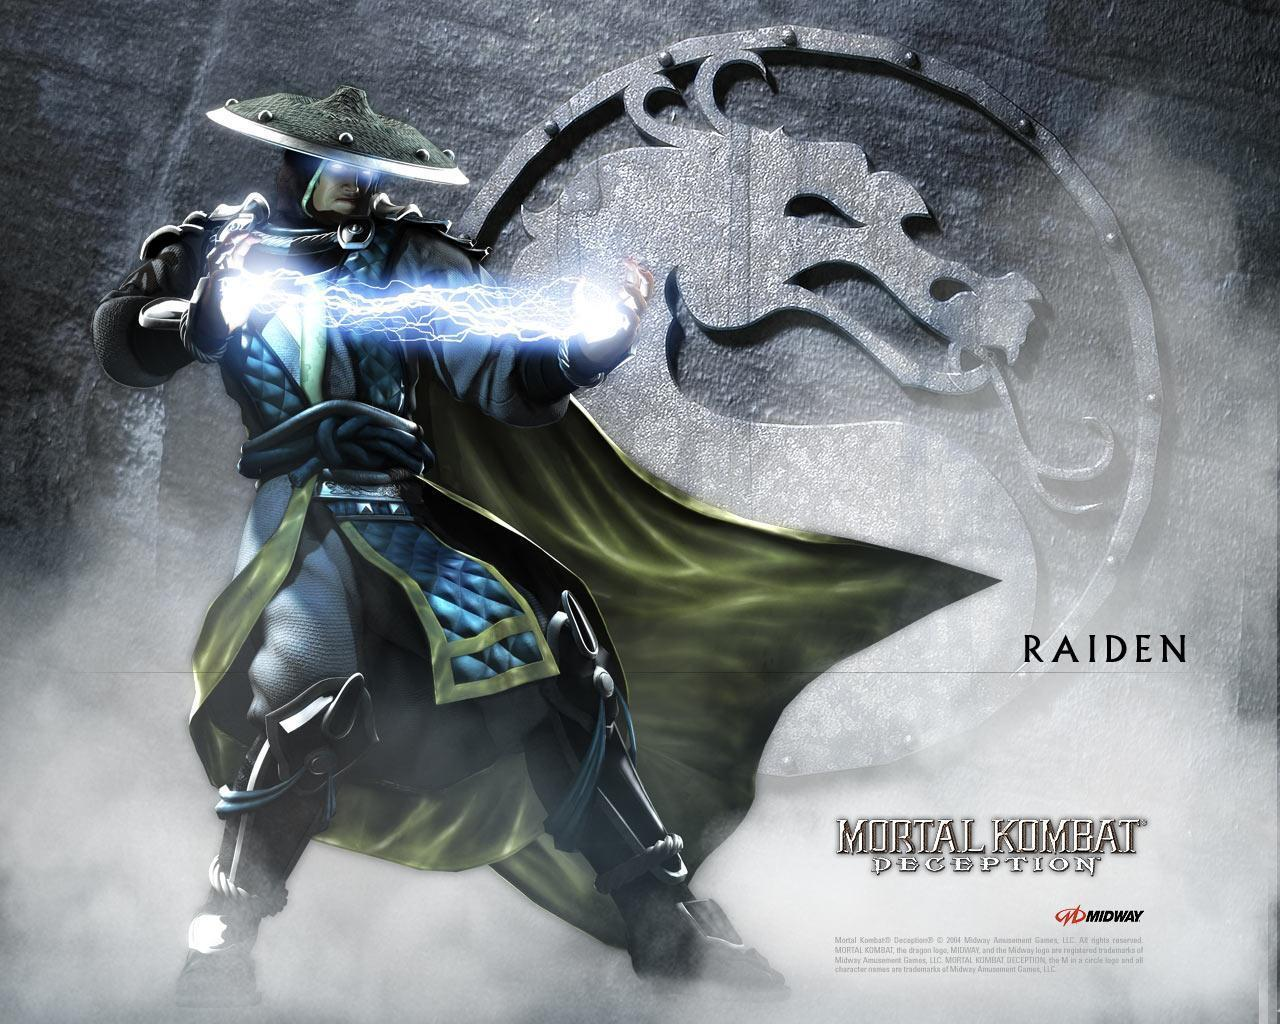 mortal kombat images raiden hd wallpaper and background photos (9467424)